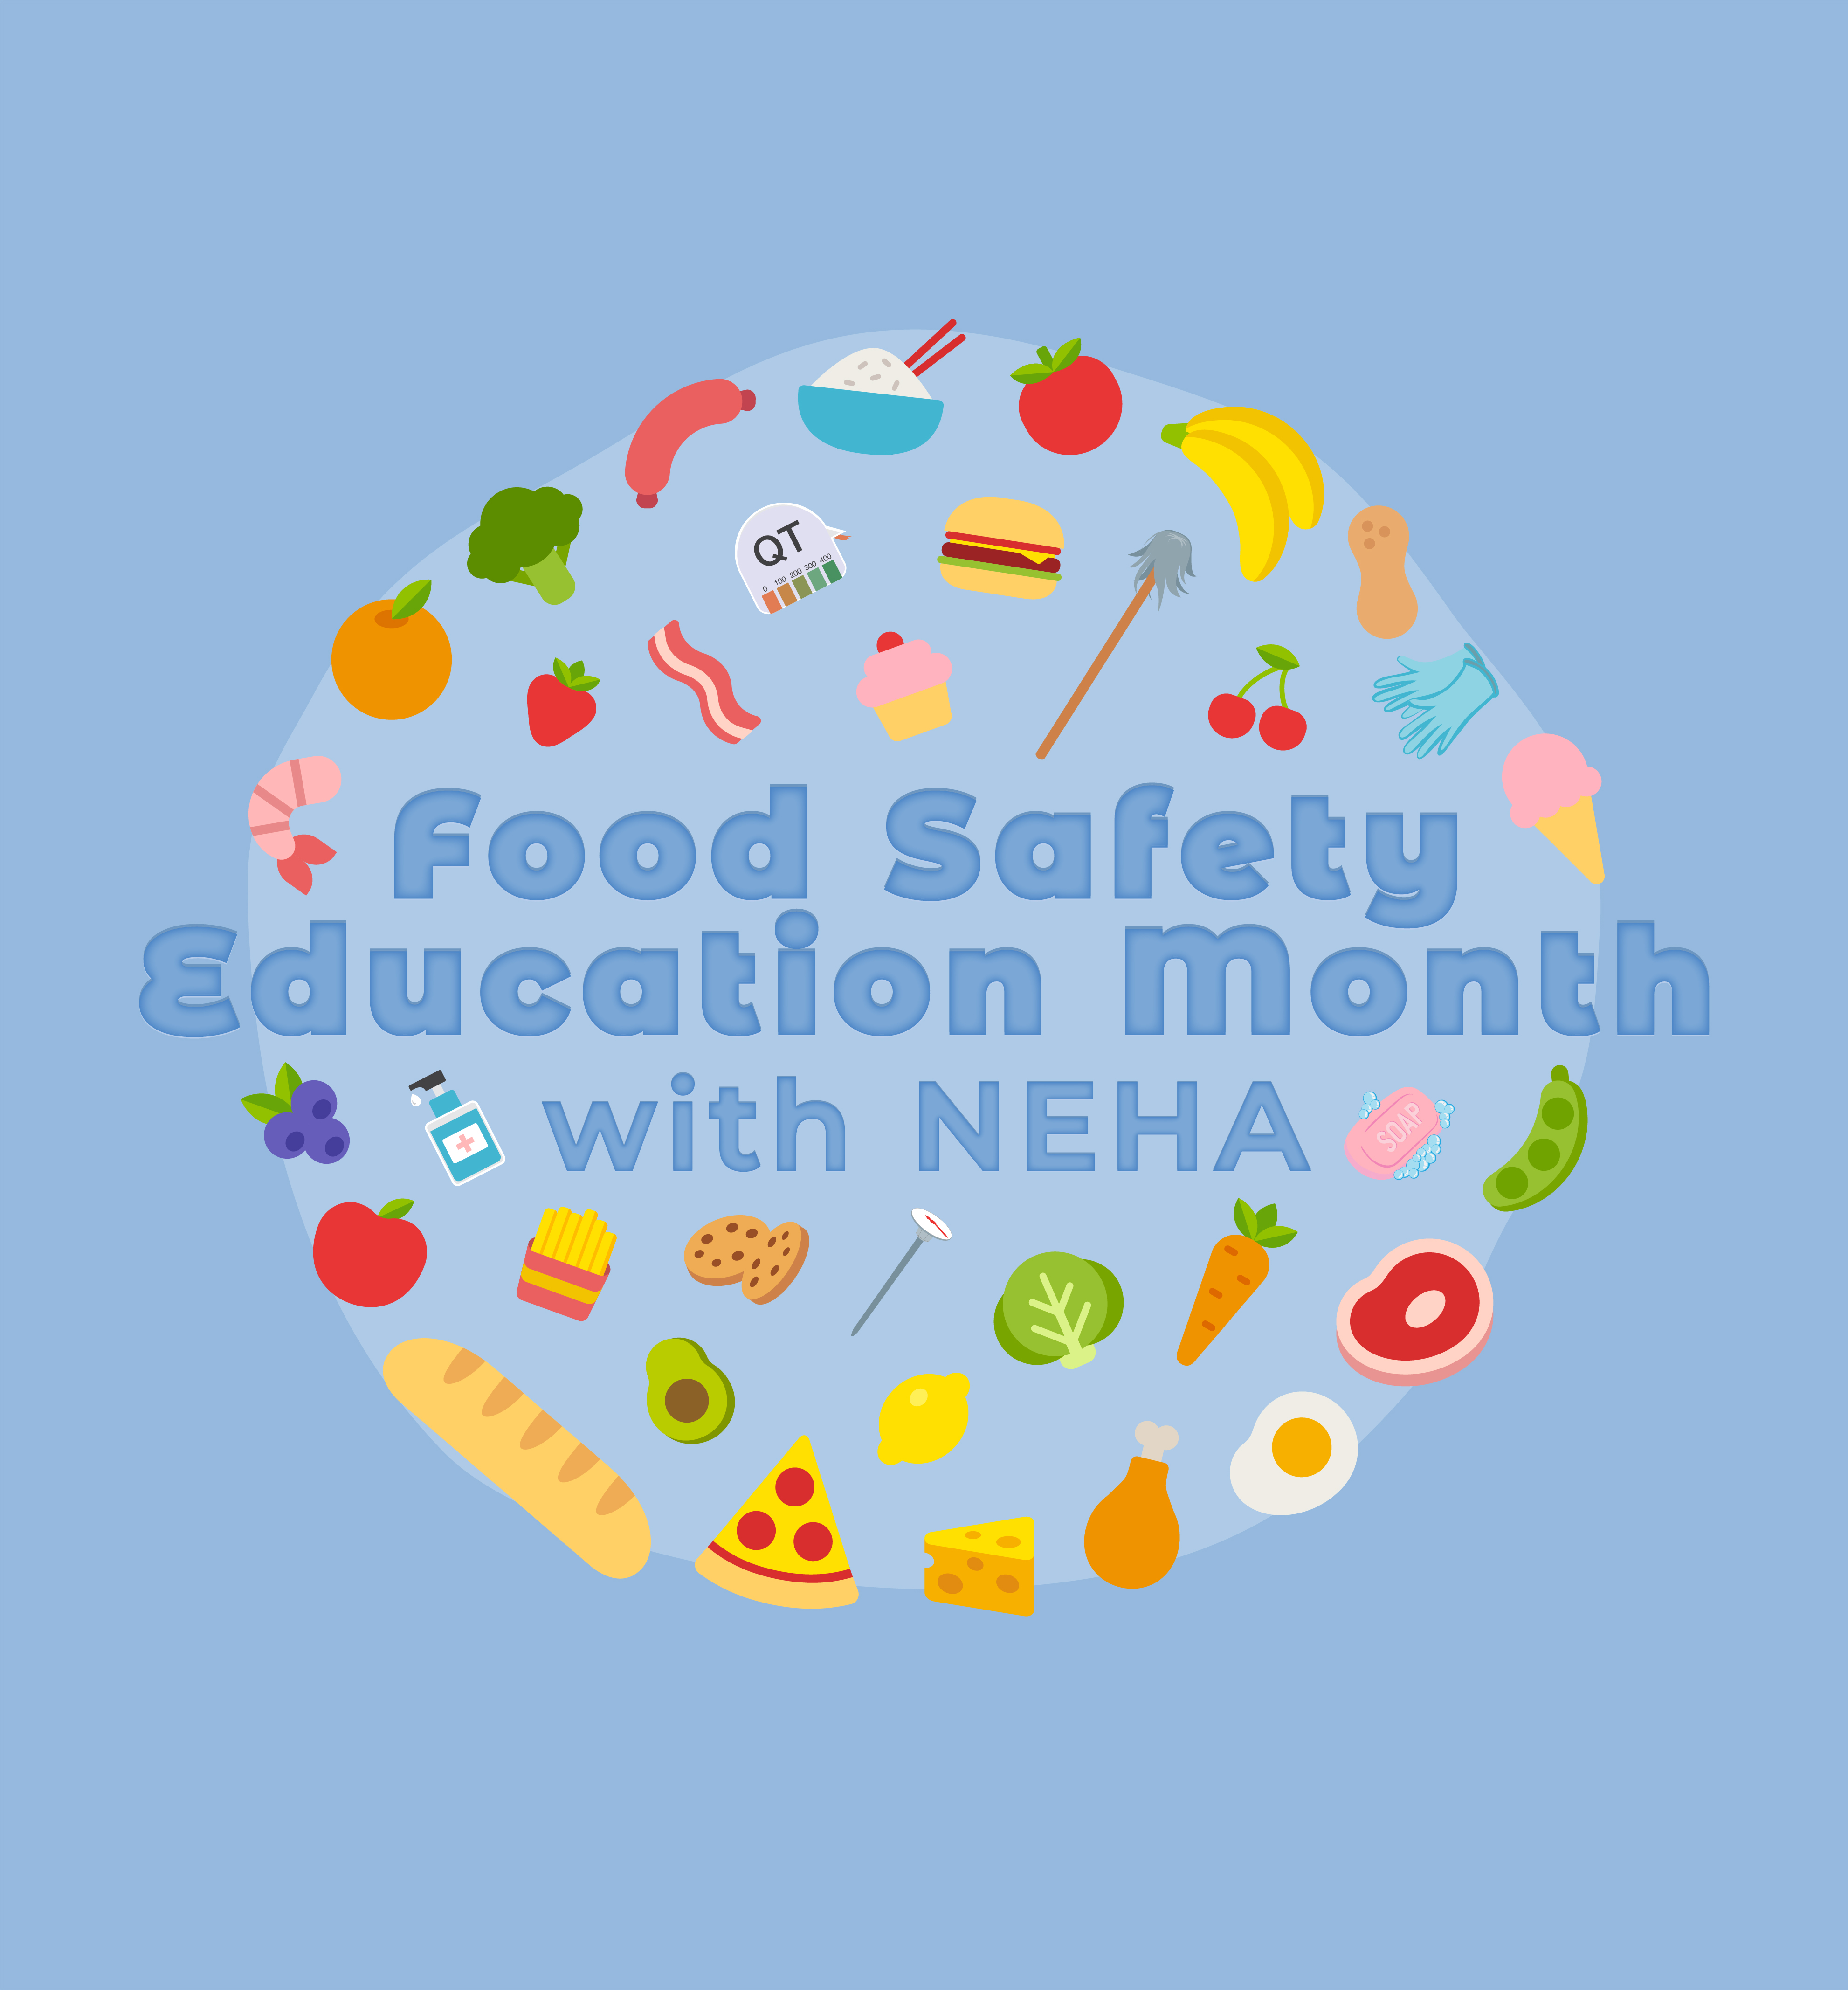 Food Safety Education Month With NEHA